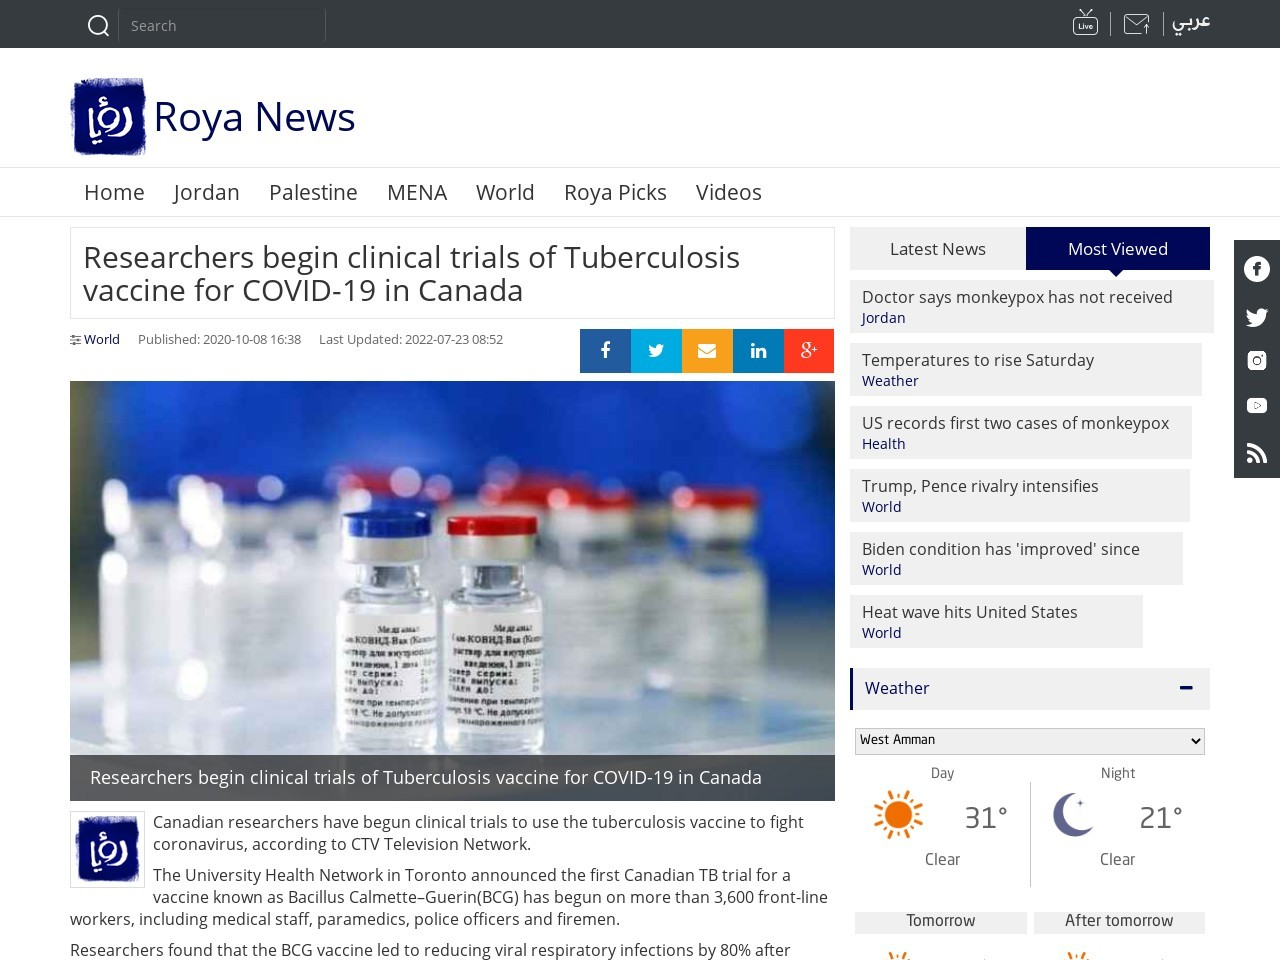 Researchers begin clinical trials of Tuberculosis vaccine for COVID-19 in Canada